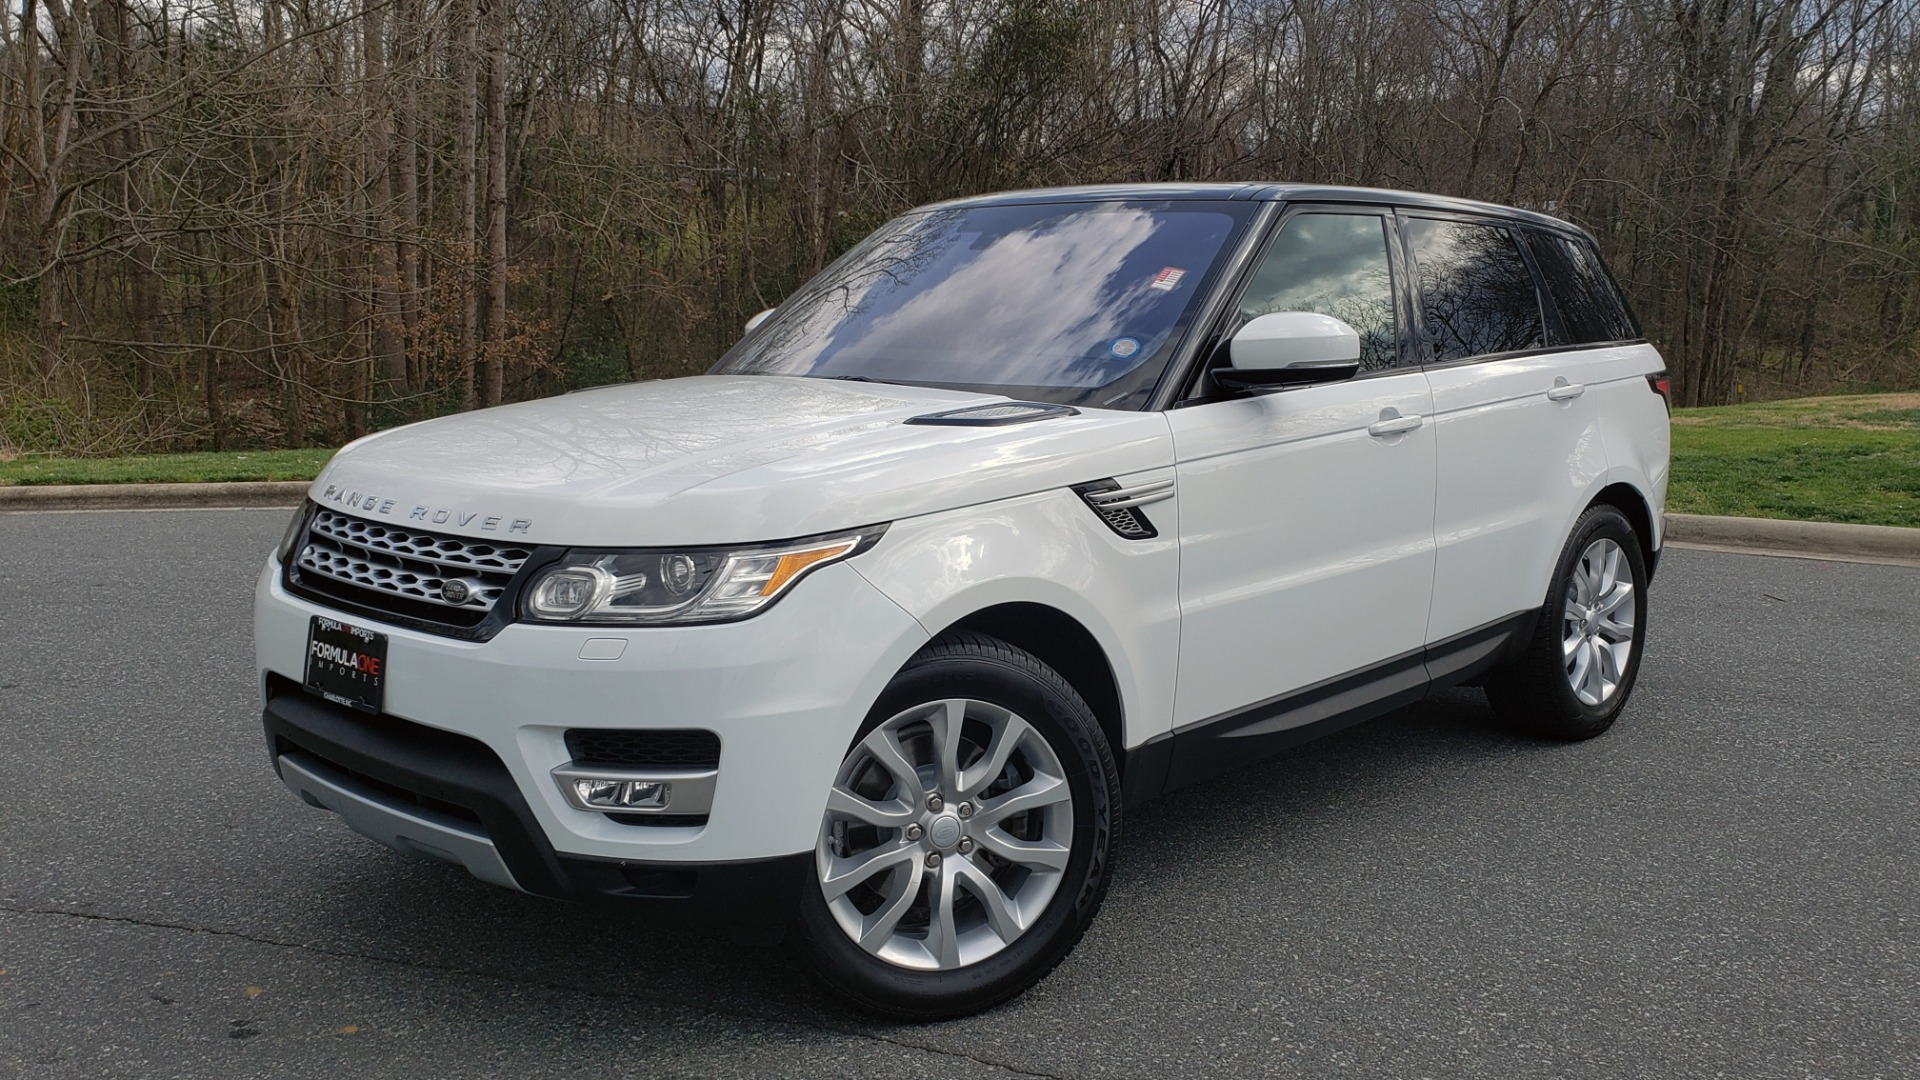 Used 2016 Land Rover RANGE ROVER SPORT V6 HSE 4WD / NAV / SUNROOF / MERIDIAN / REARVIEW for sale Sold at Formula Imports in Charlotte NC 28227 1